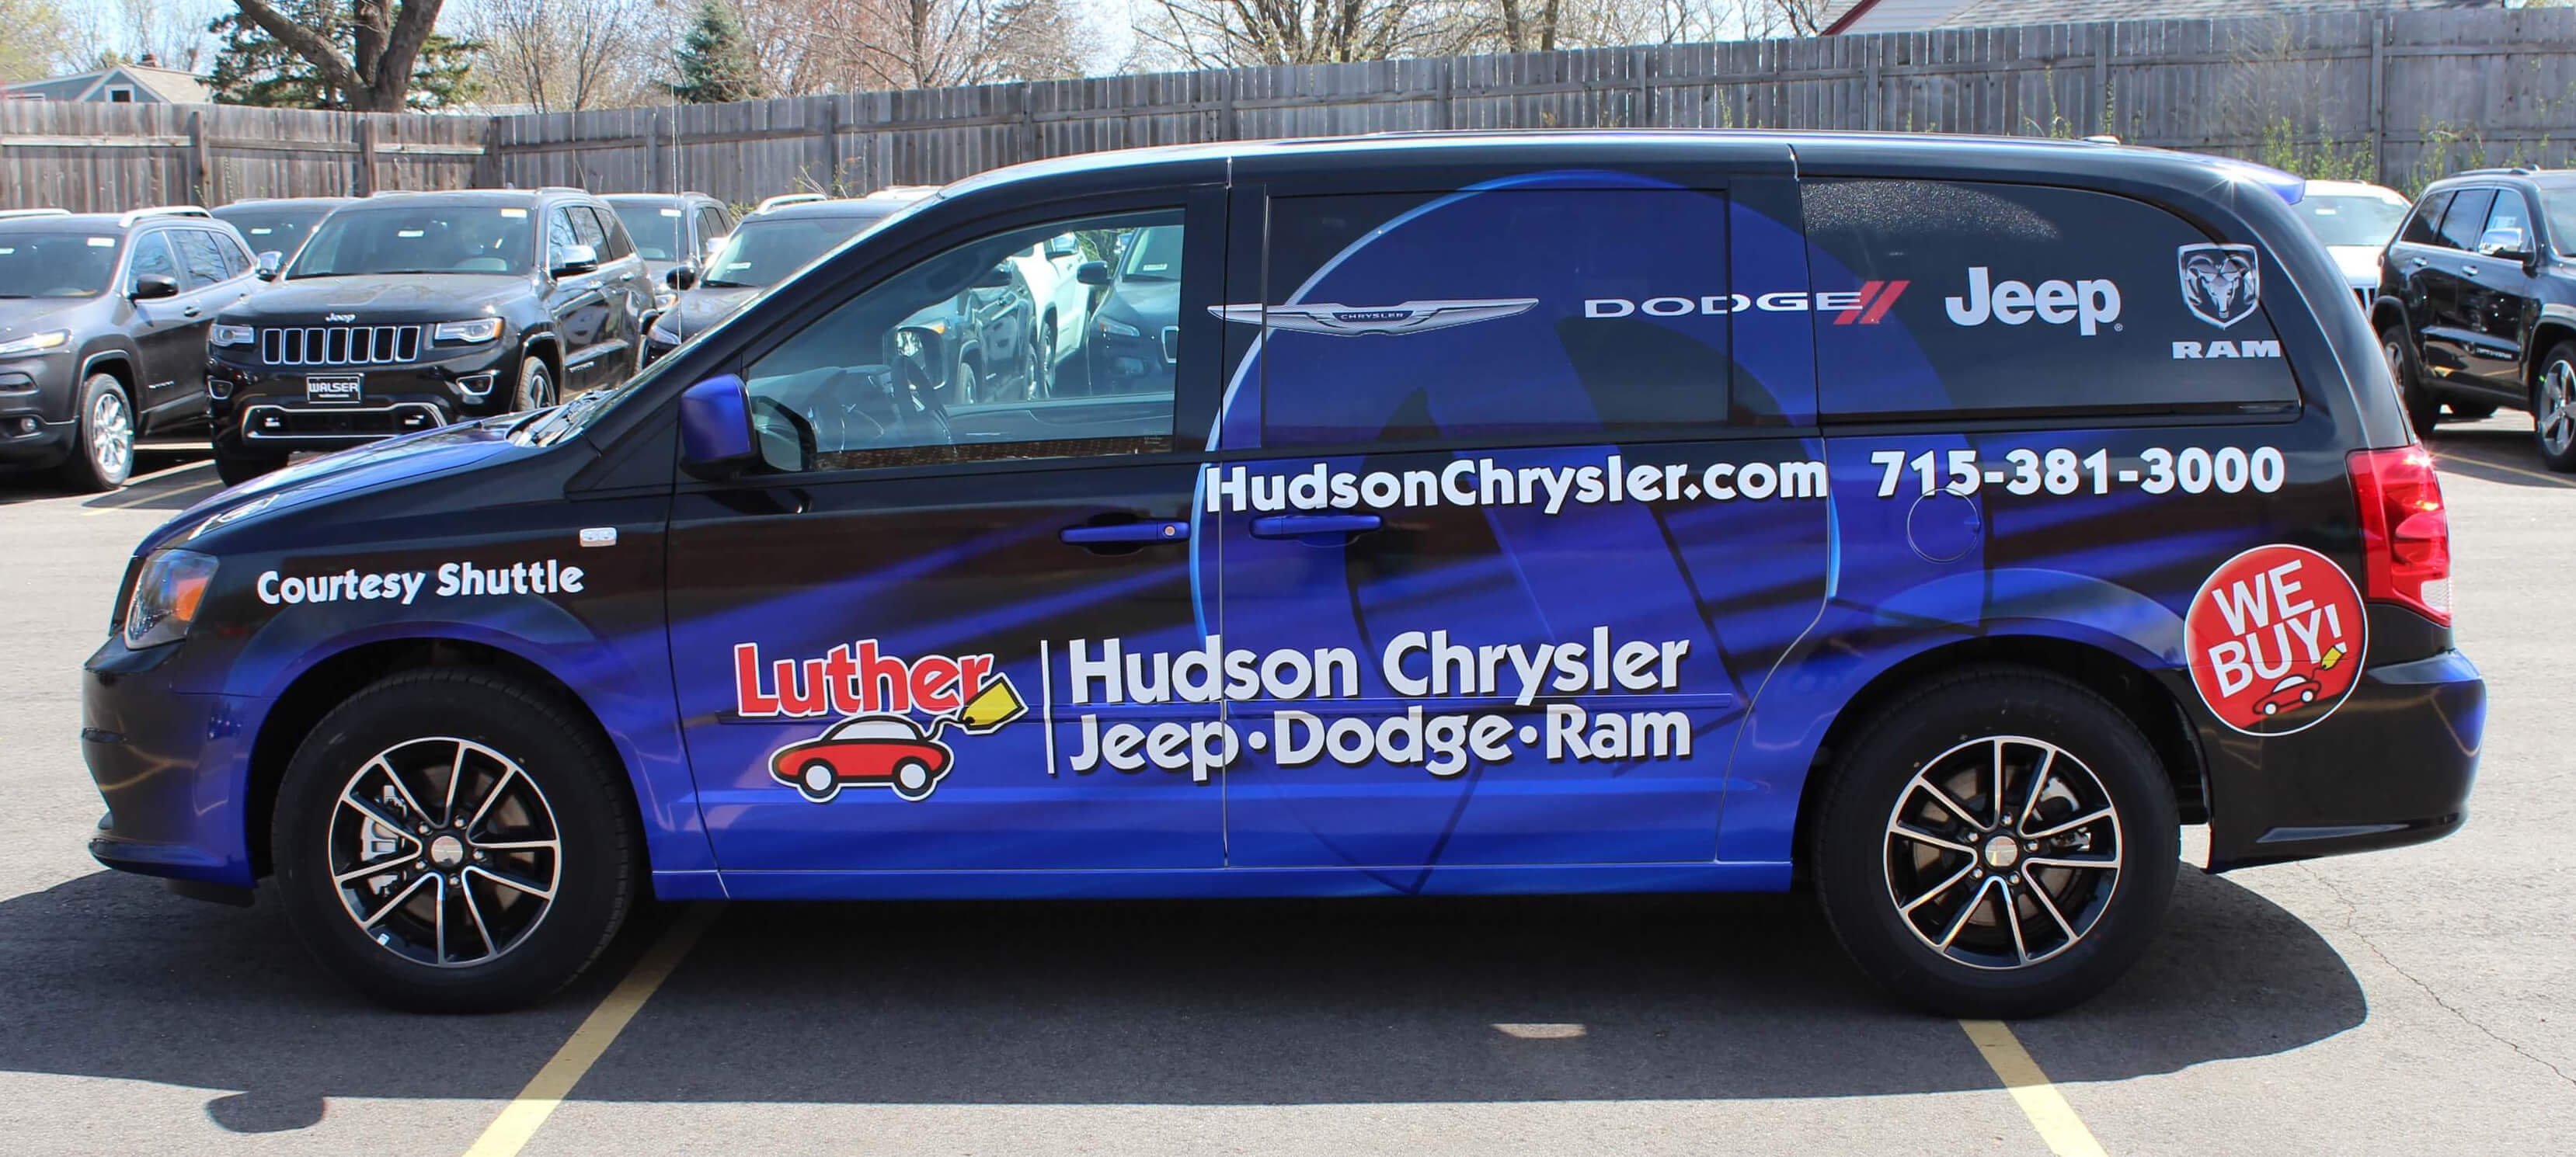 Luther Hudson CJDR Shuttle Wrap